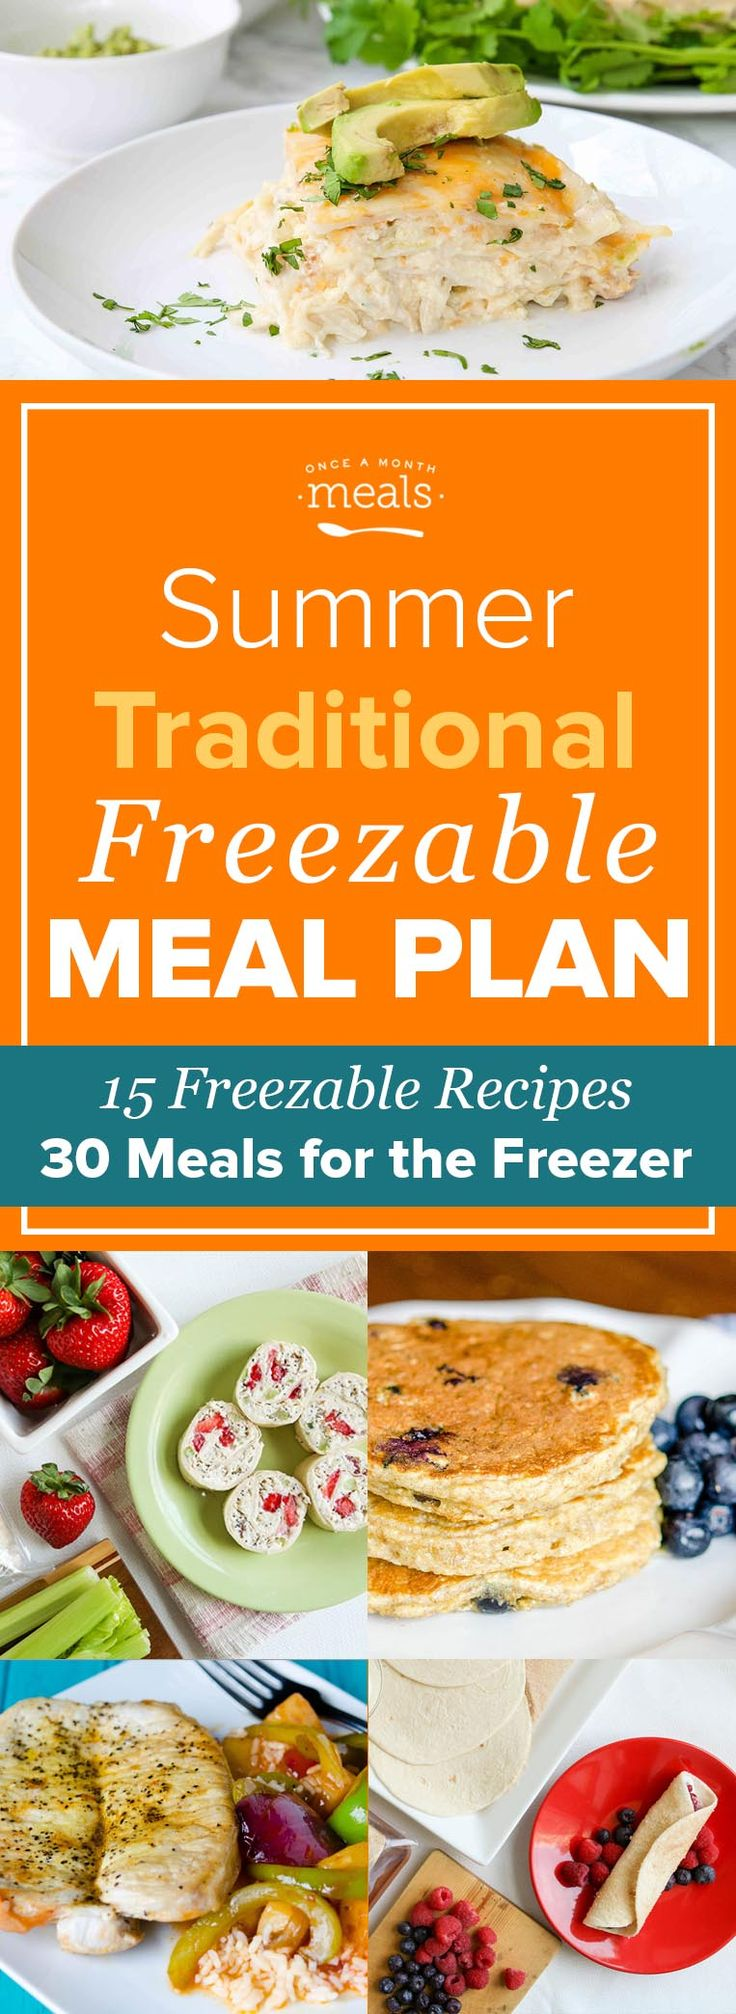 Use our Summer Traditional Freezer Menu to make the most of seasonal produce like blueberries, peppers, and pineapple with a plan of easy freezer meals! via @onceamonthmeals